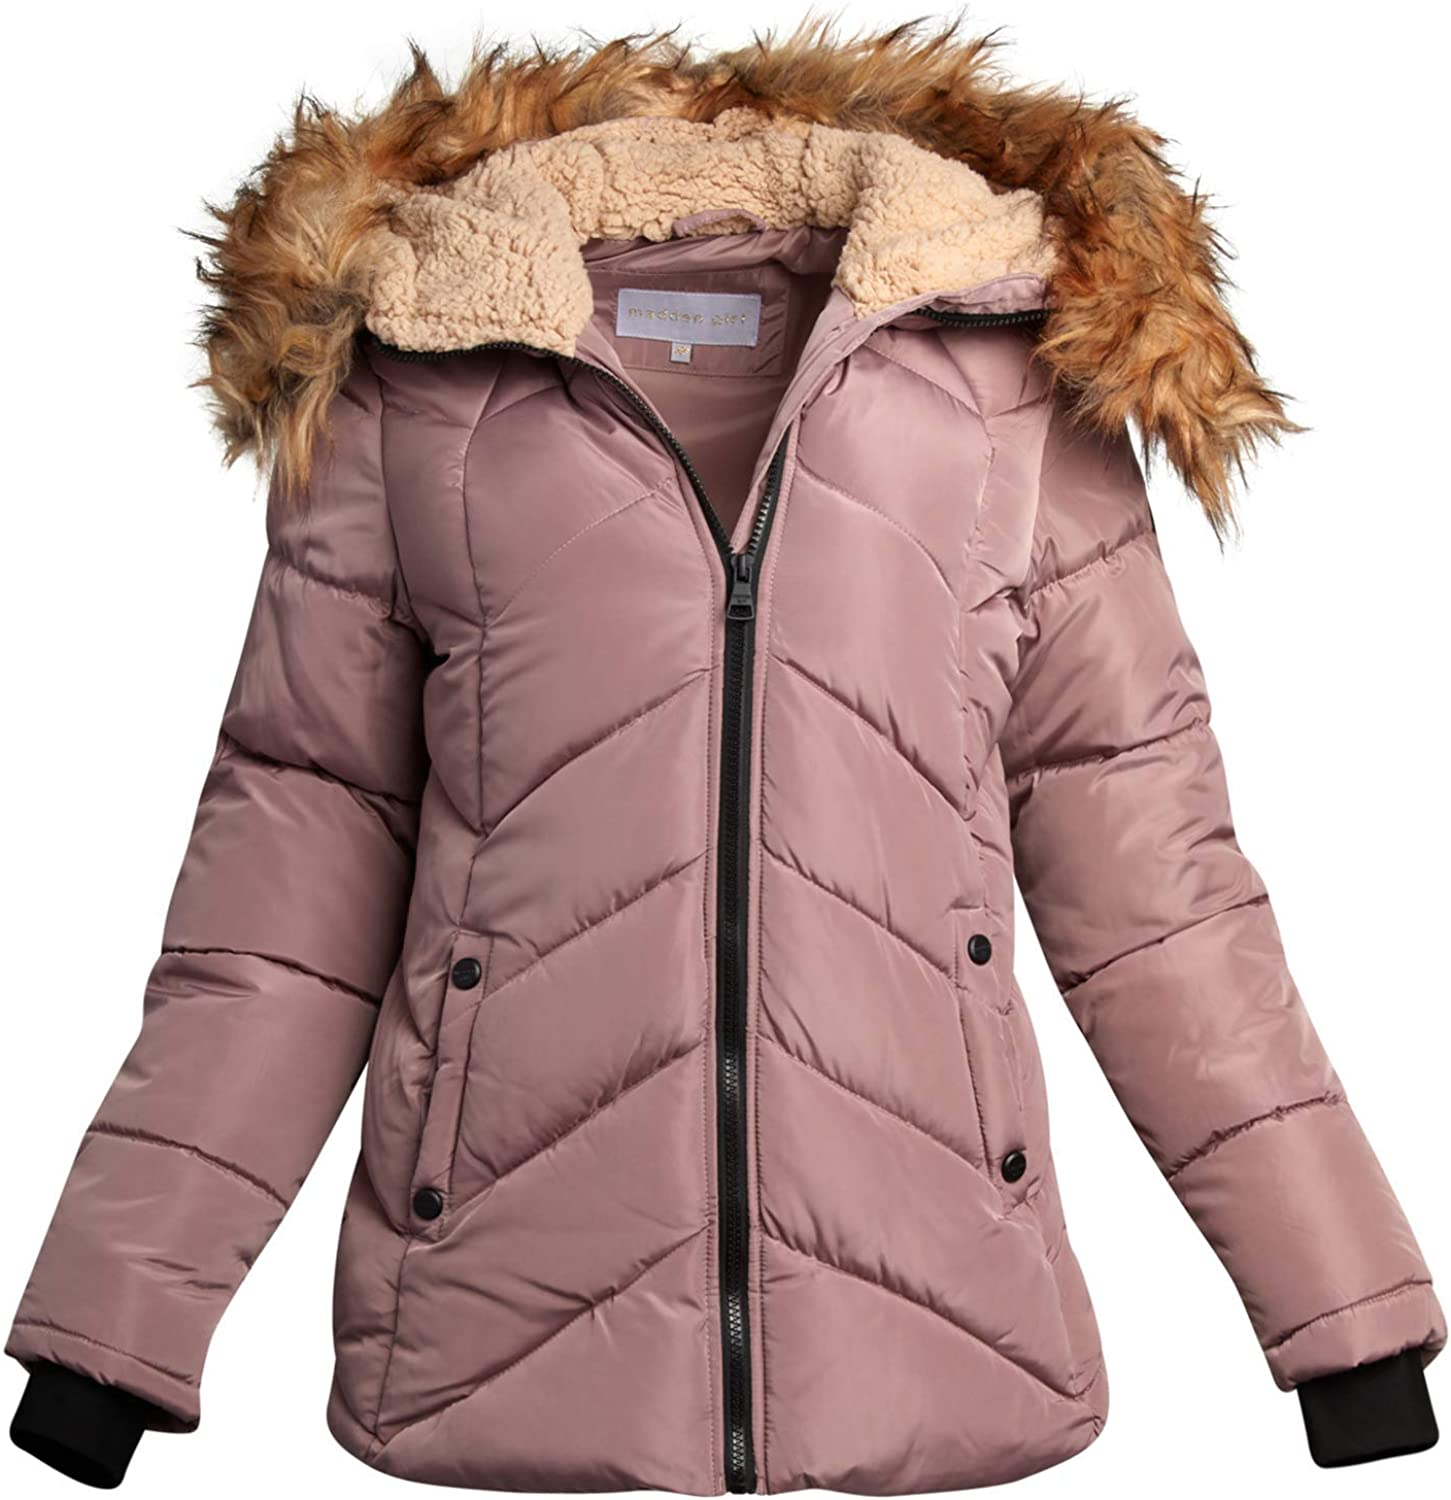 Madden Girl Women's Winter Puffer Jacket with Removable Sherpa-Lined, Fur-Trimmed Hood